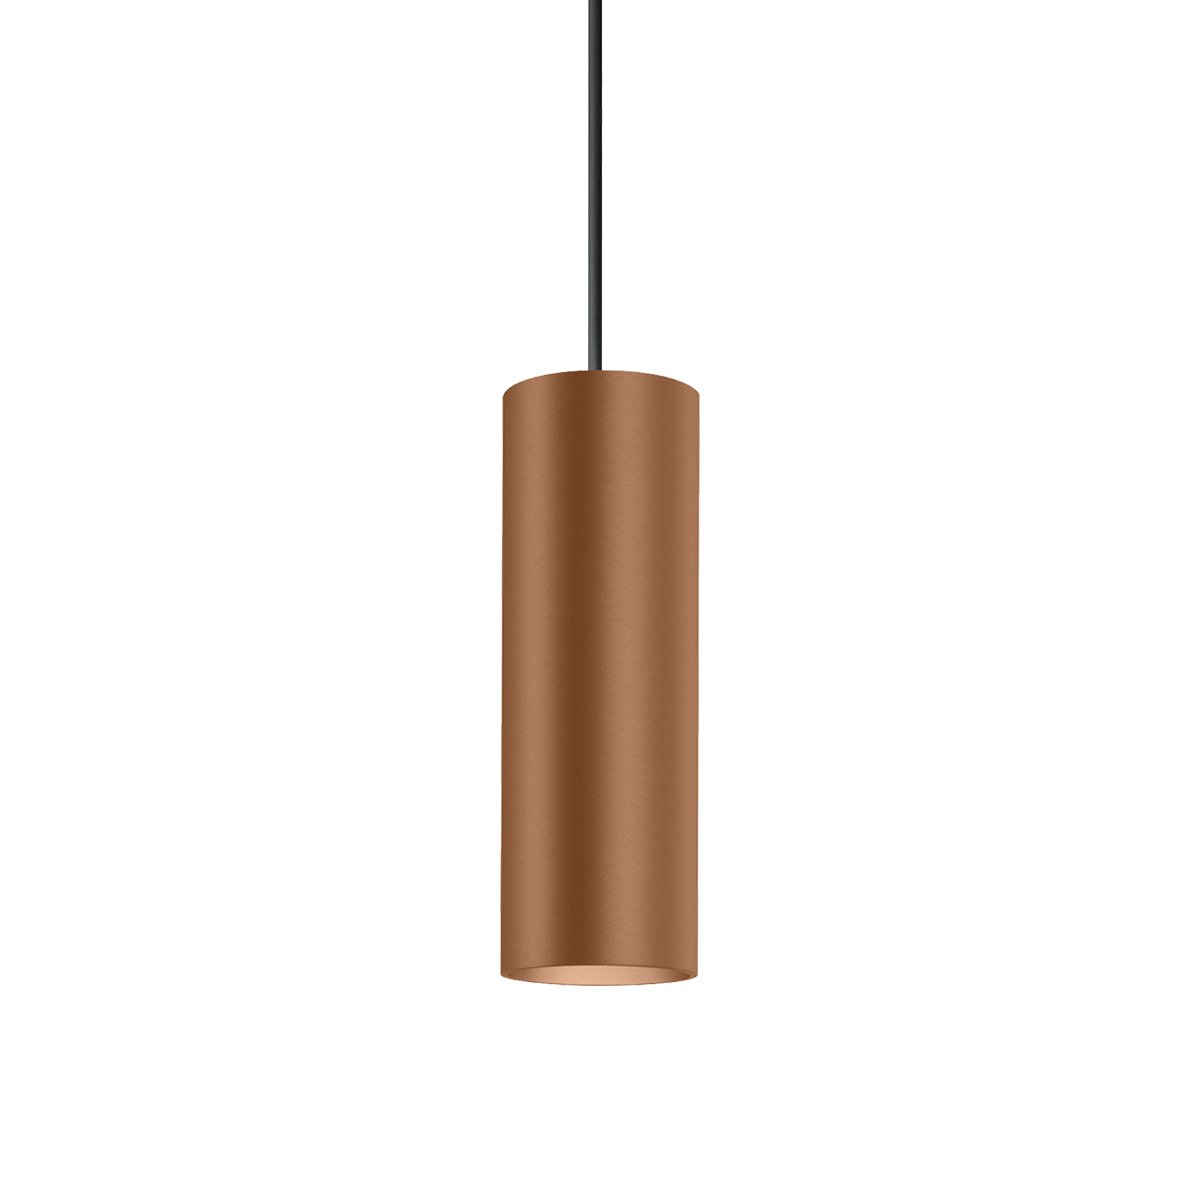 Wever & Ducr� Ray 2.0 Hanglamp Copper - LED 3000 Kelvin